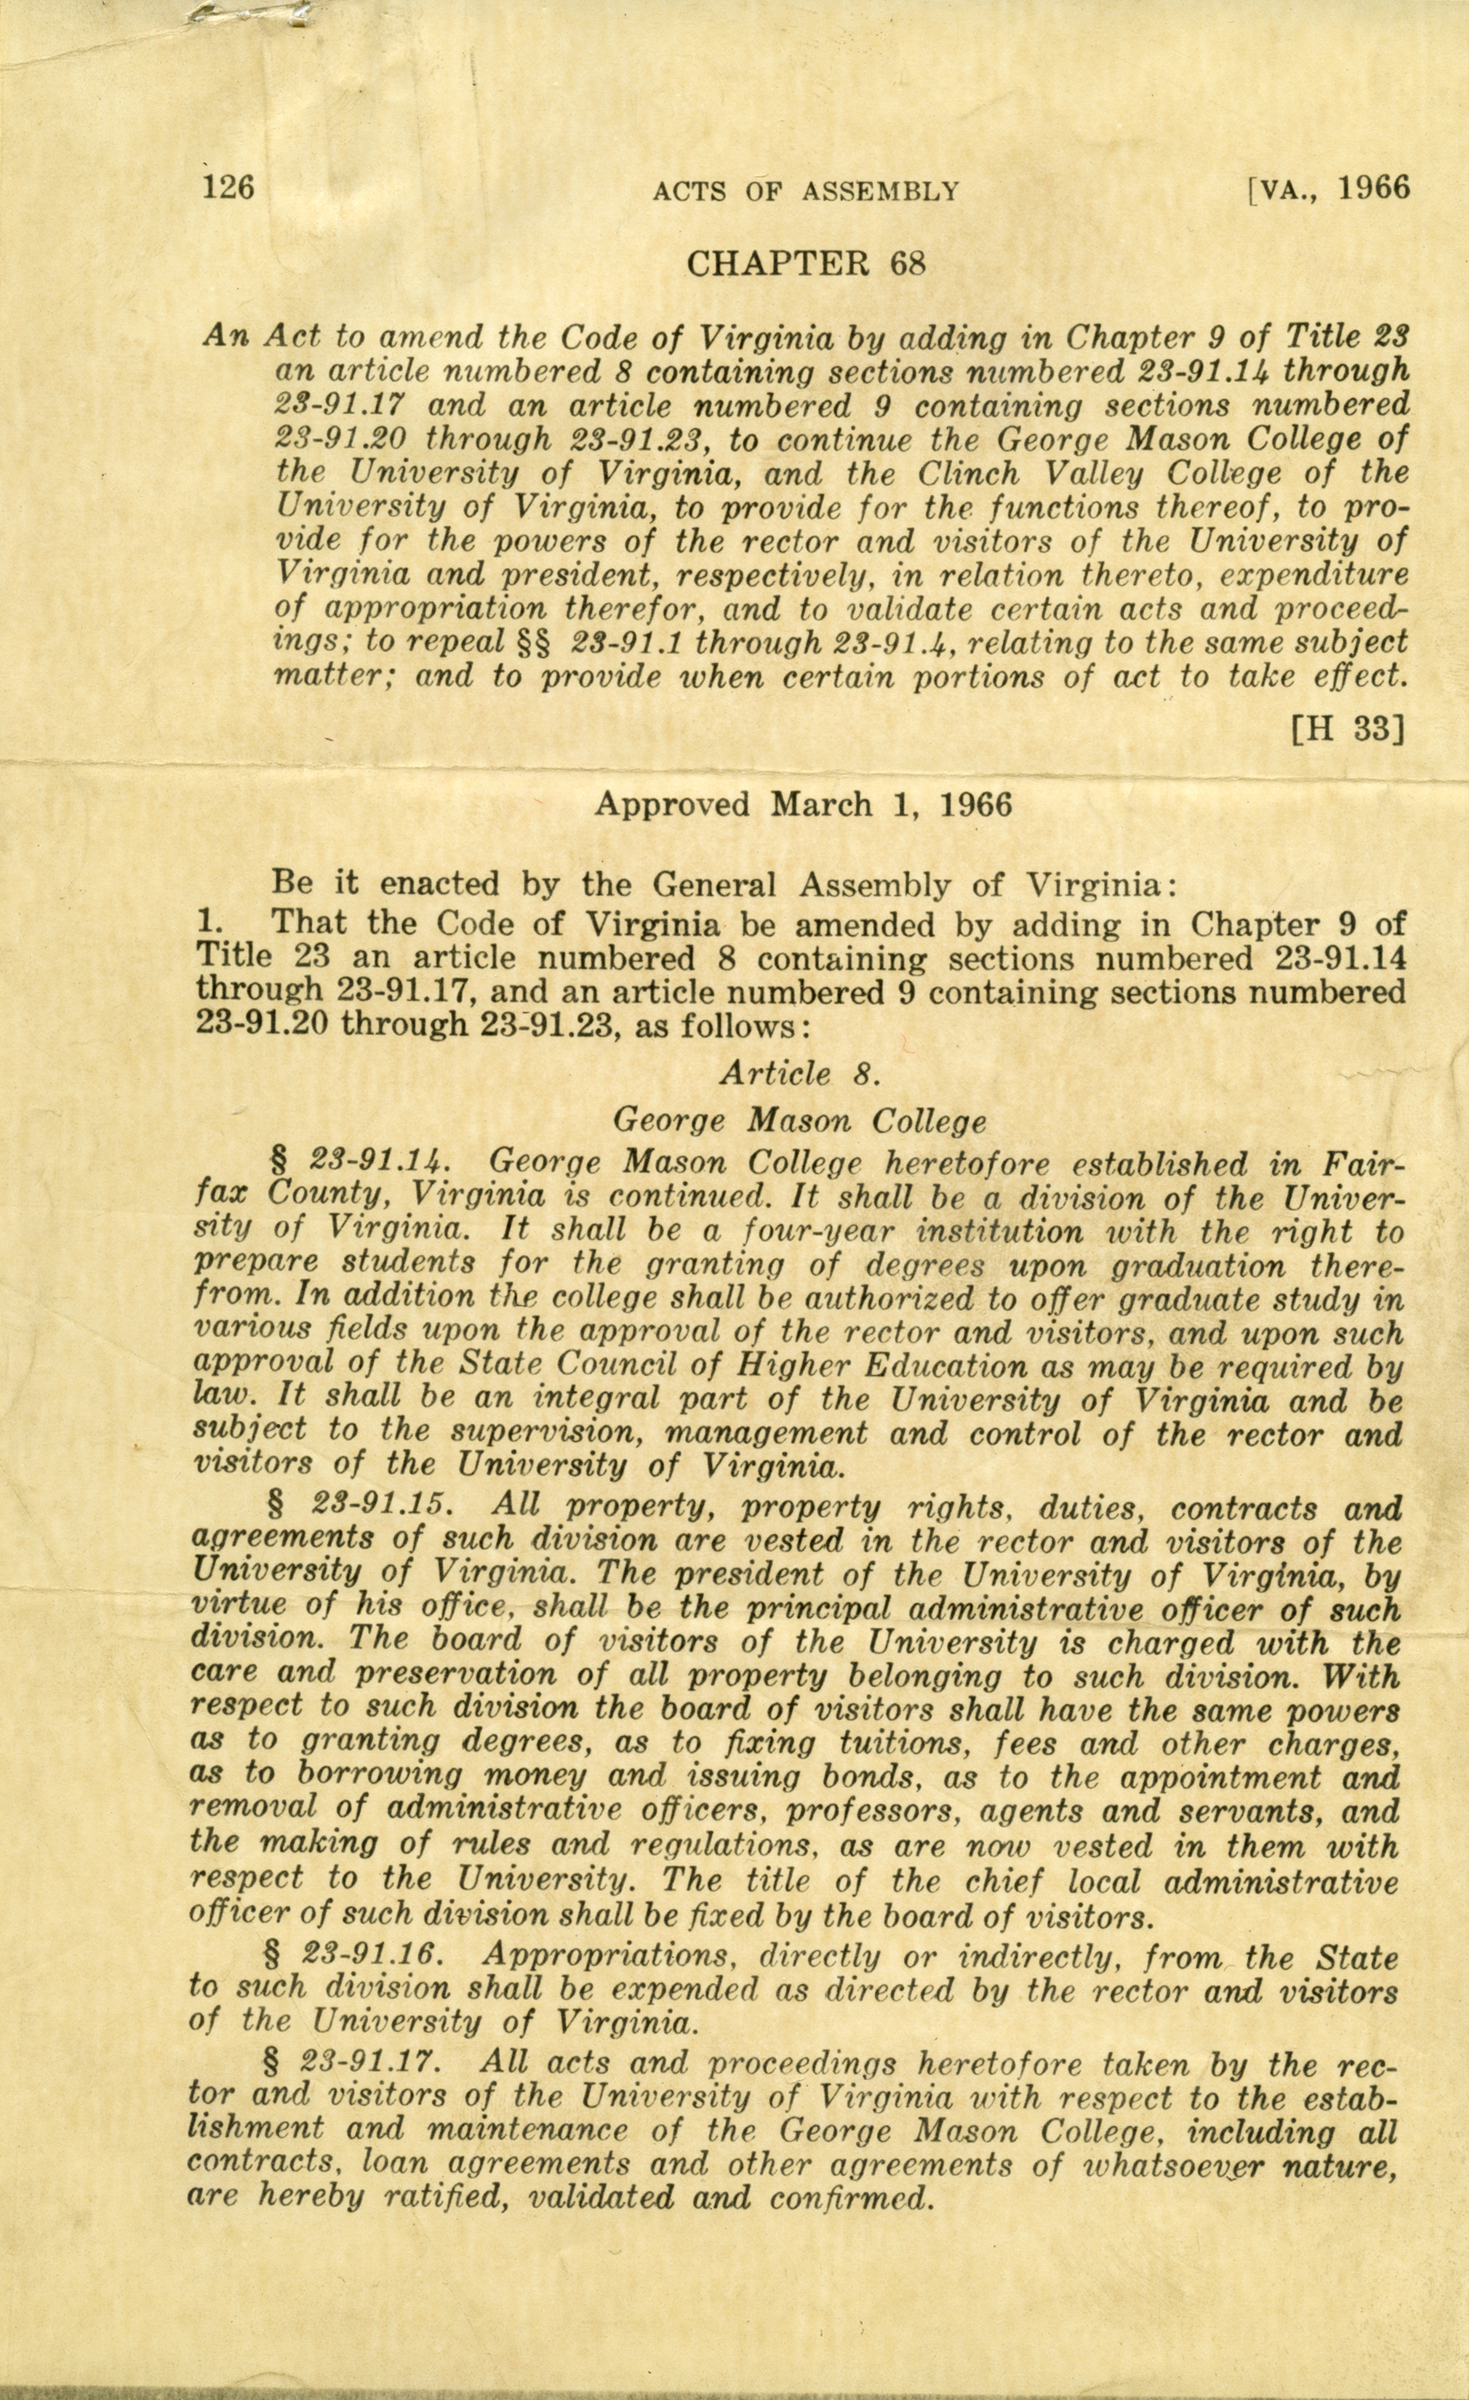 Acts of Assembly, Chapter 68 [H33] Article 8. George Mason College, March 1, 1966.